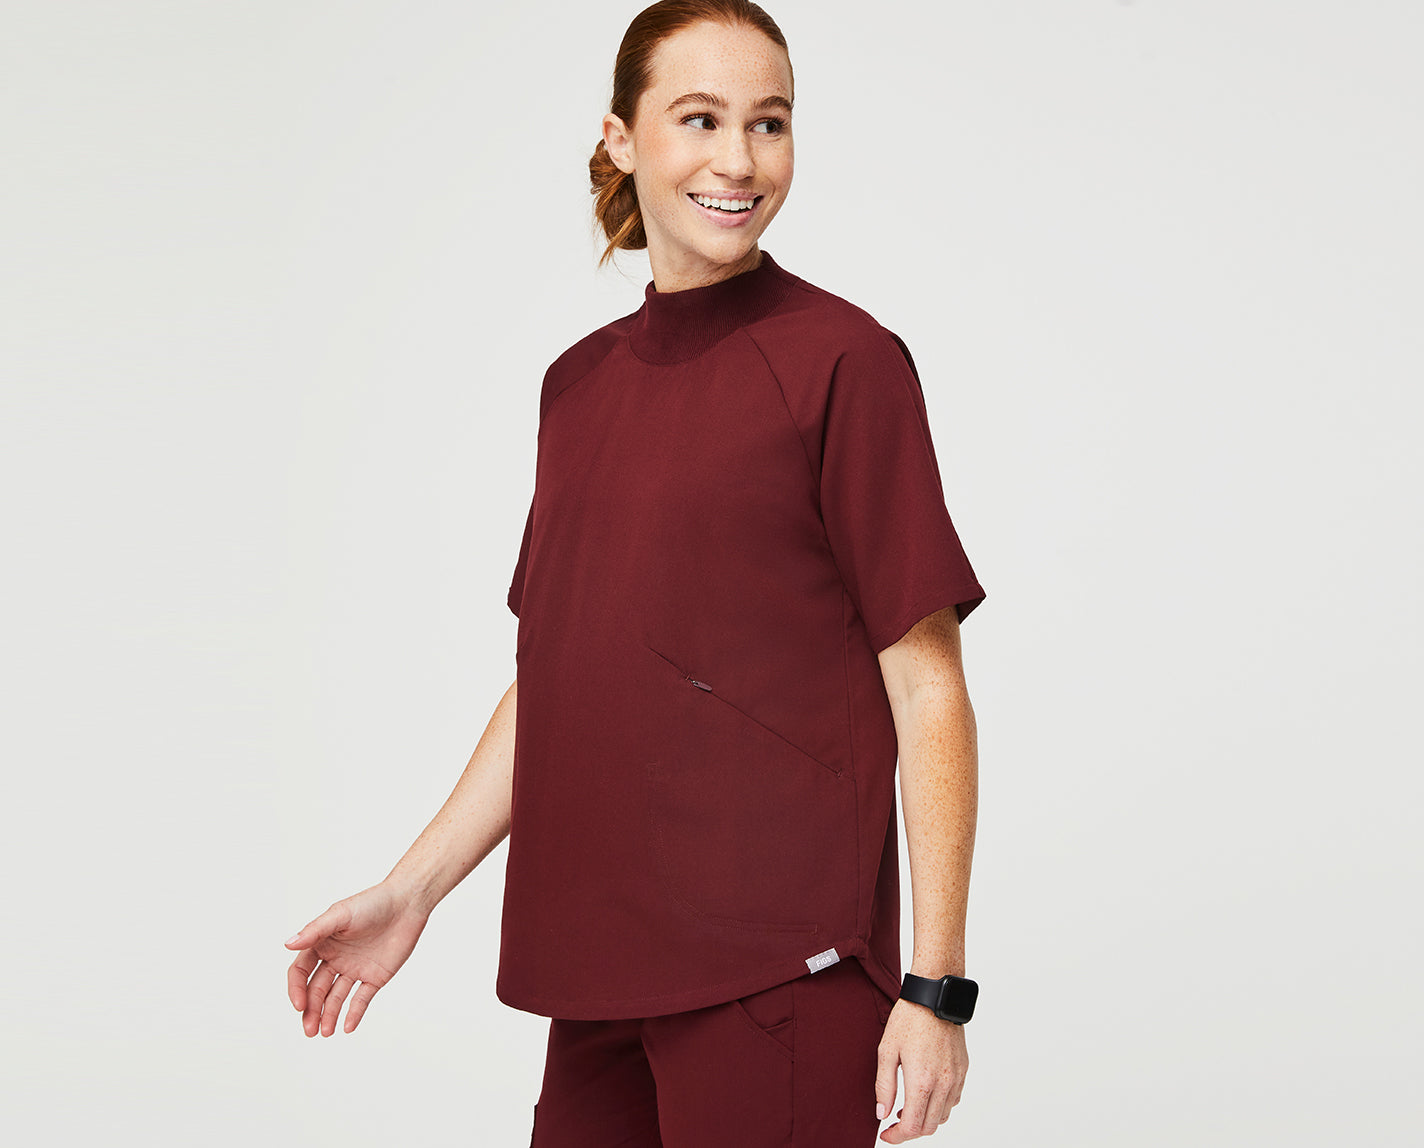 Like you have any time to relax during your busy schedule. This relaxed mock neck top helps keep things moving in the right direction with its raglan sleeve and an oversized fit for keeping you in the game.